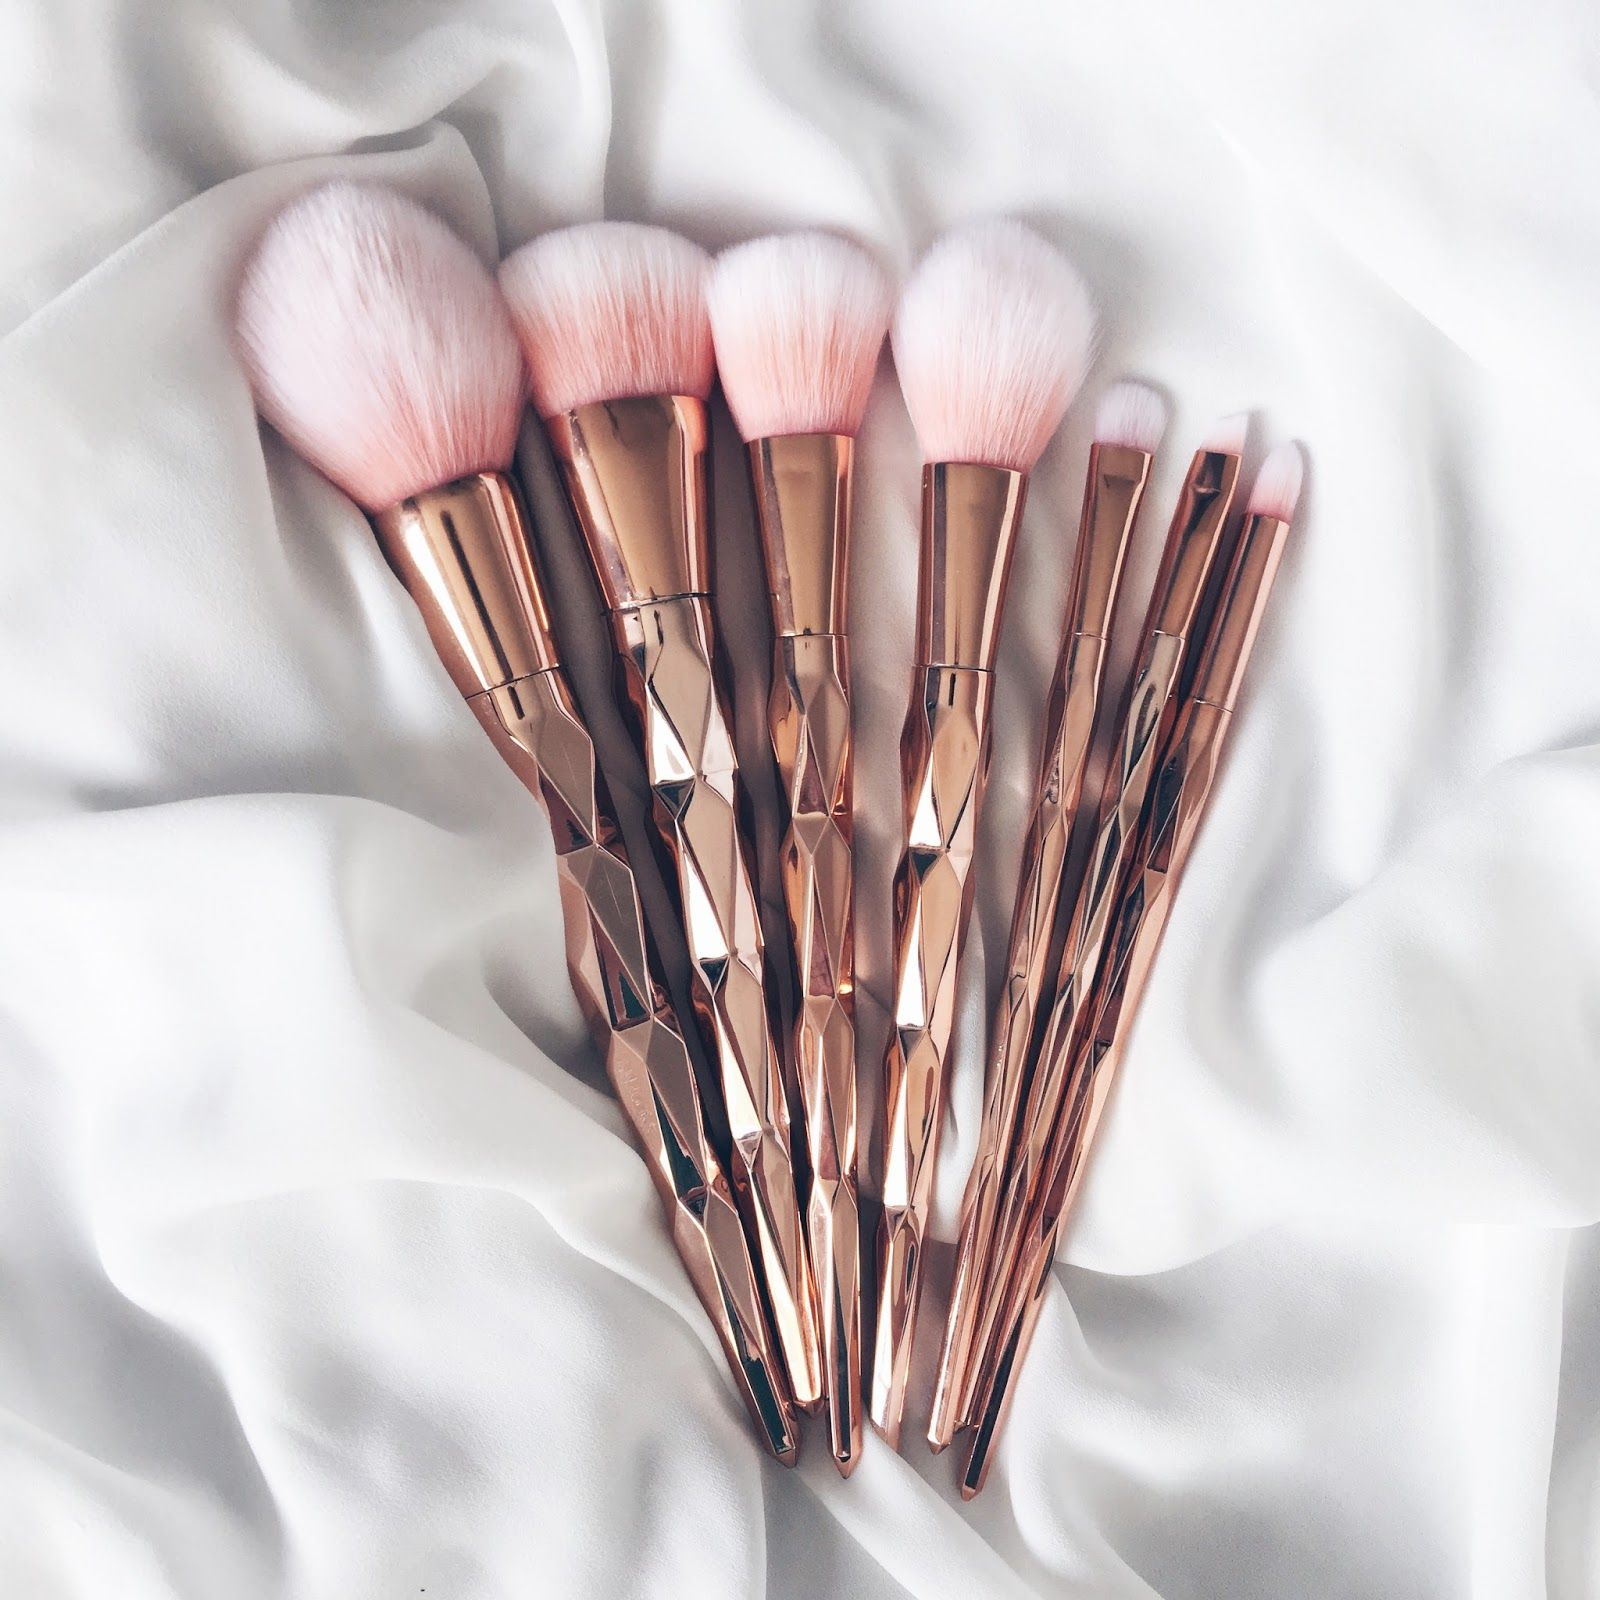 Rose Gold Makeup Brushes (InspobyT) Rose gold makeup